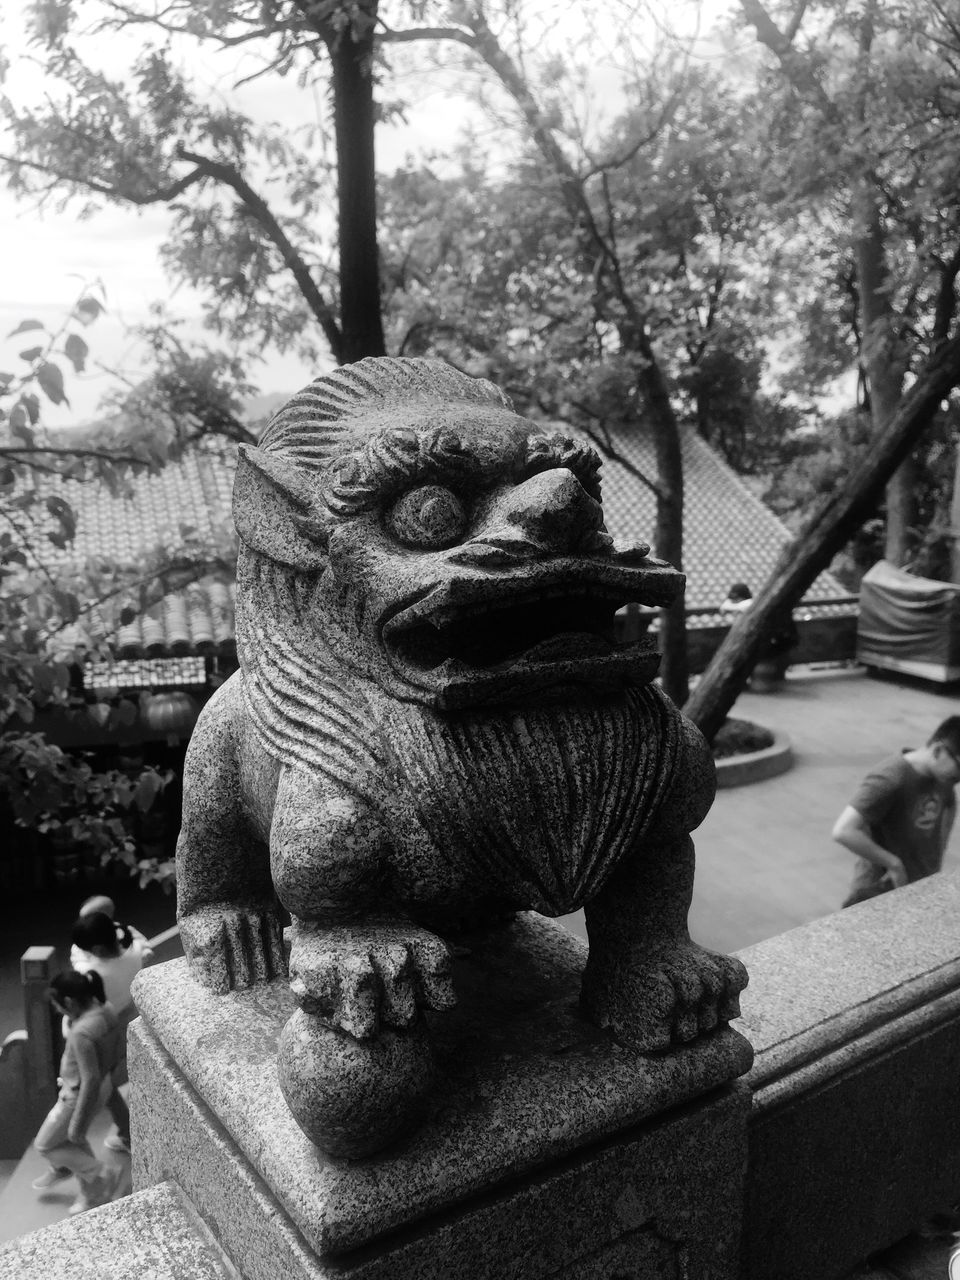 statue, sculpture, art and craft, animal representation, day, outdoors, monkey, tree, no people, animal themes, close-up, chinese dragon